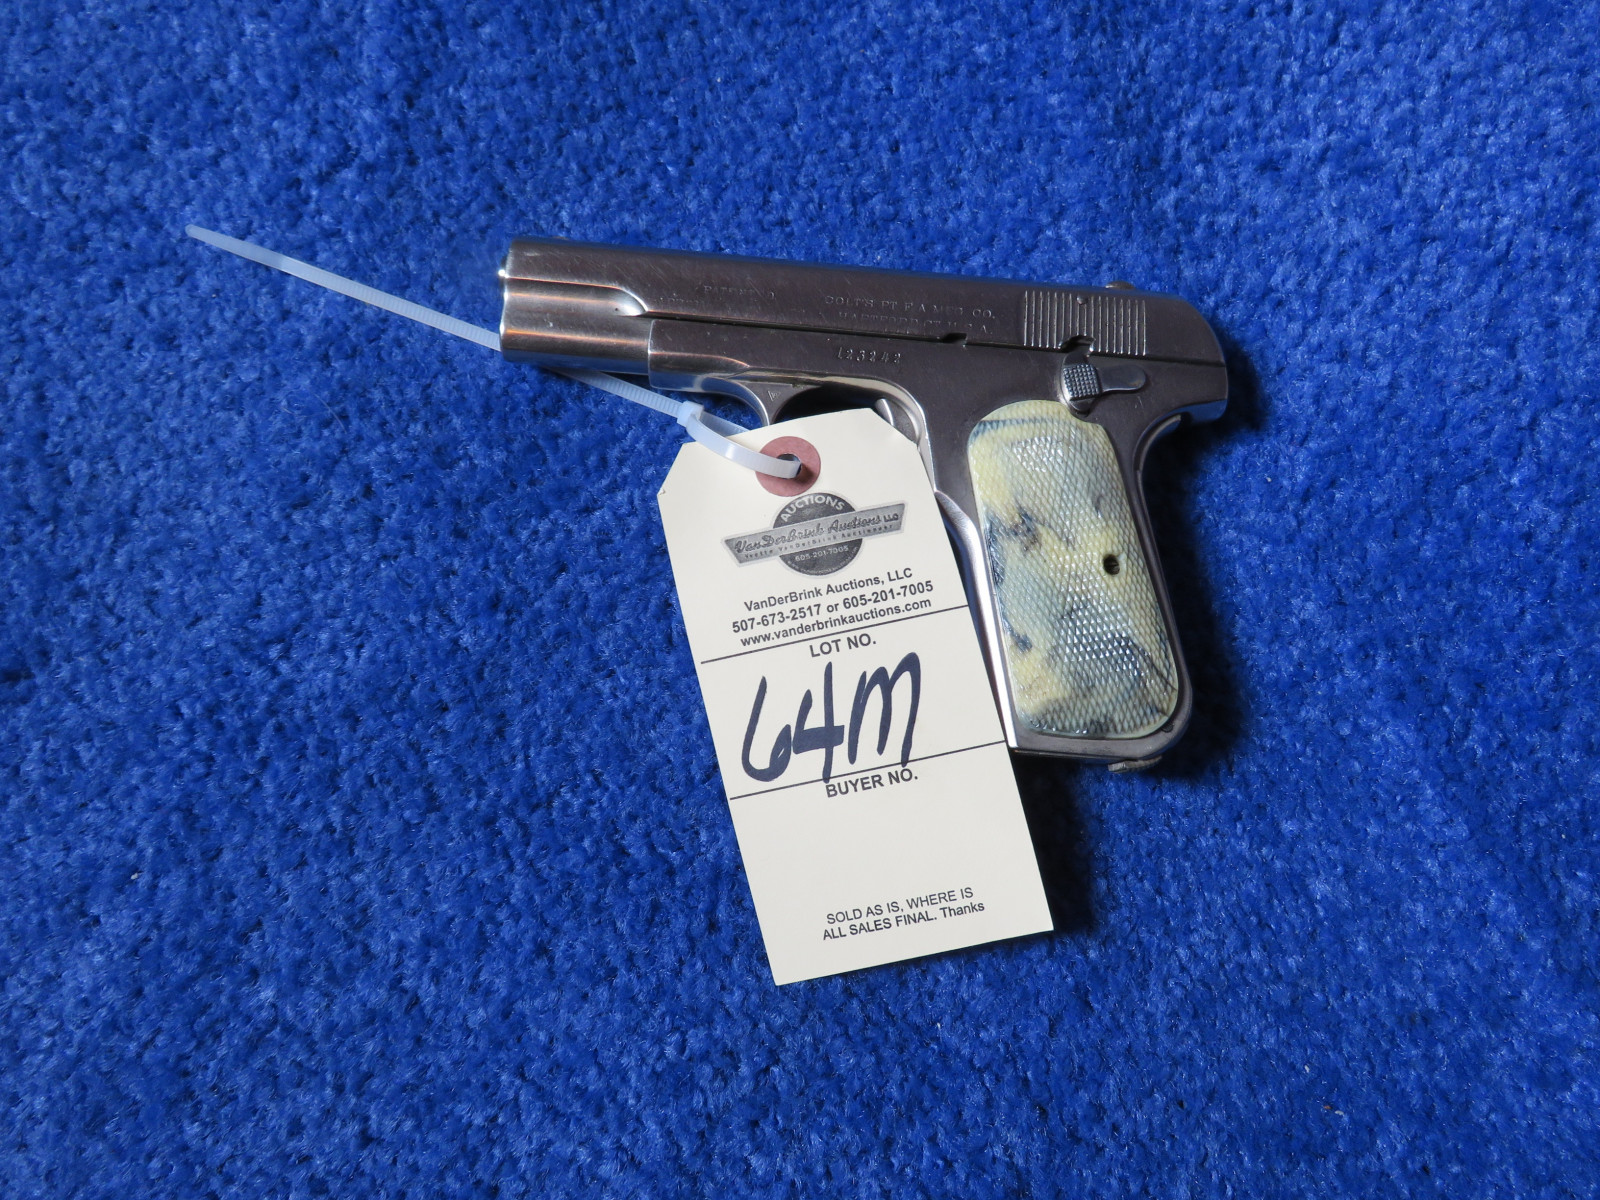 Colt Pocket Positive .32 Cal Semi-Auto Handgun - Image 2